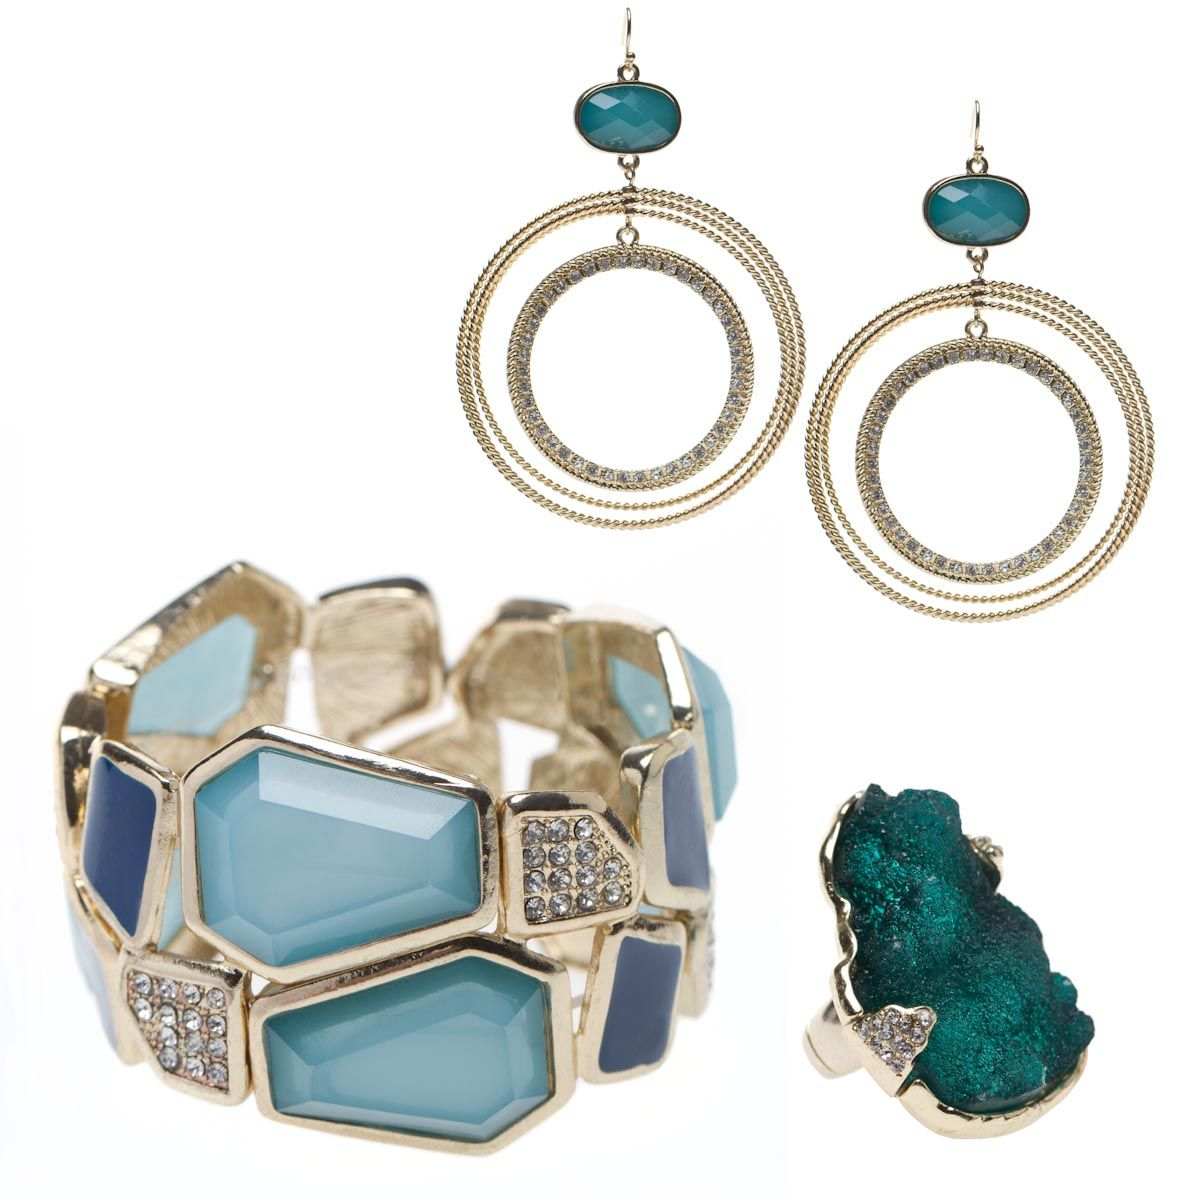 Sea Glass >> Love this earring, bracelet and ring set! $39.95 for everything!